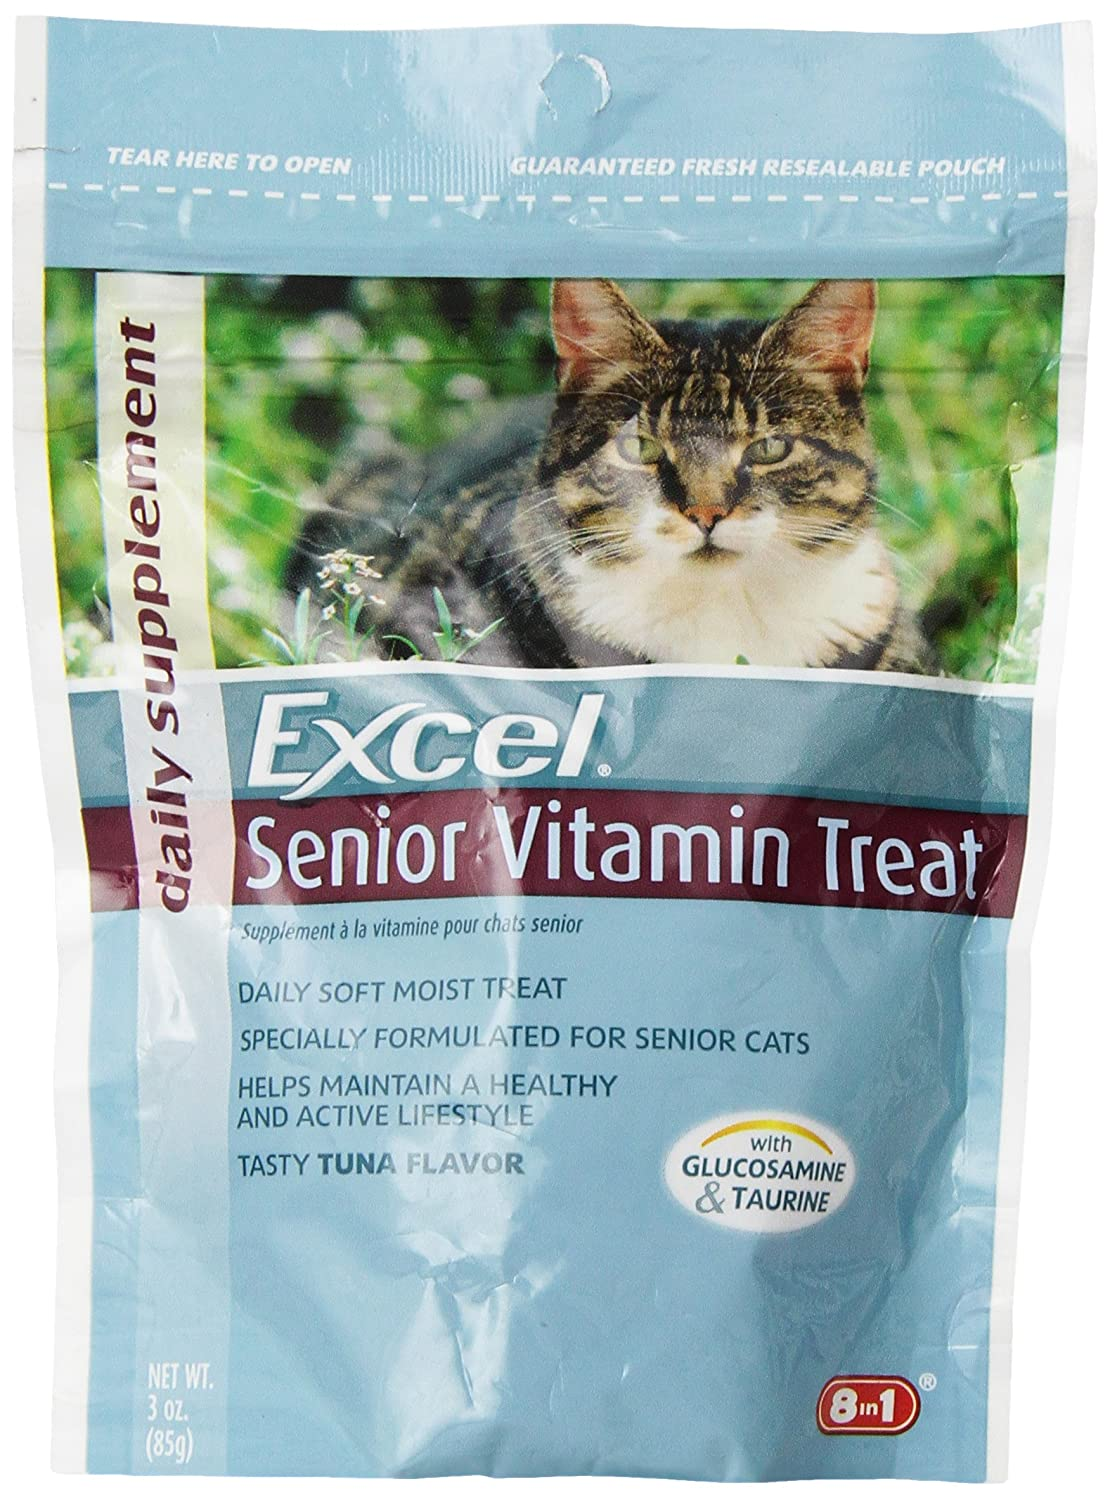 Excel Soft & Moist Vitamin for Senior Cats 3-Ounce Pouch